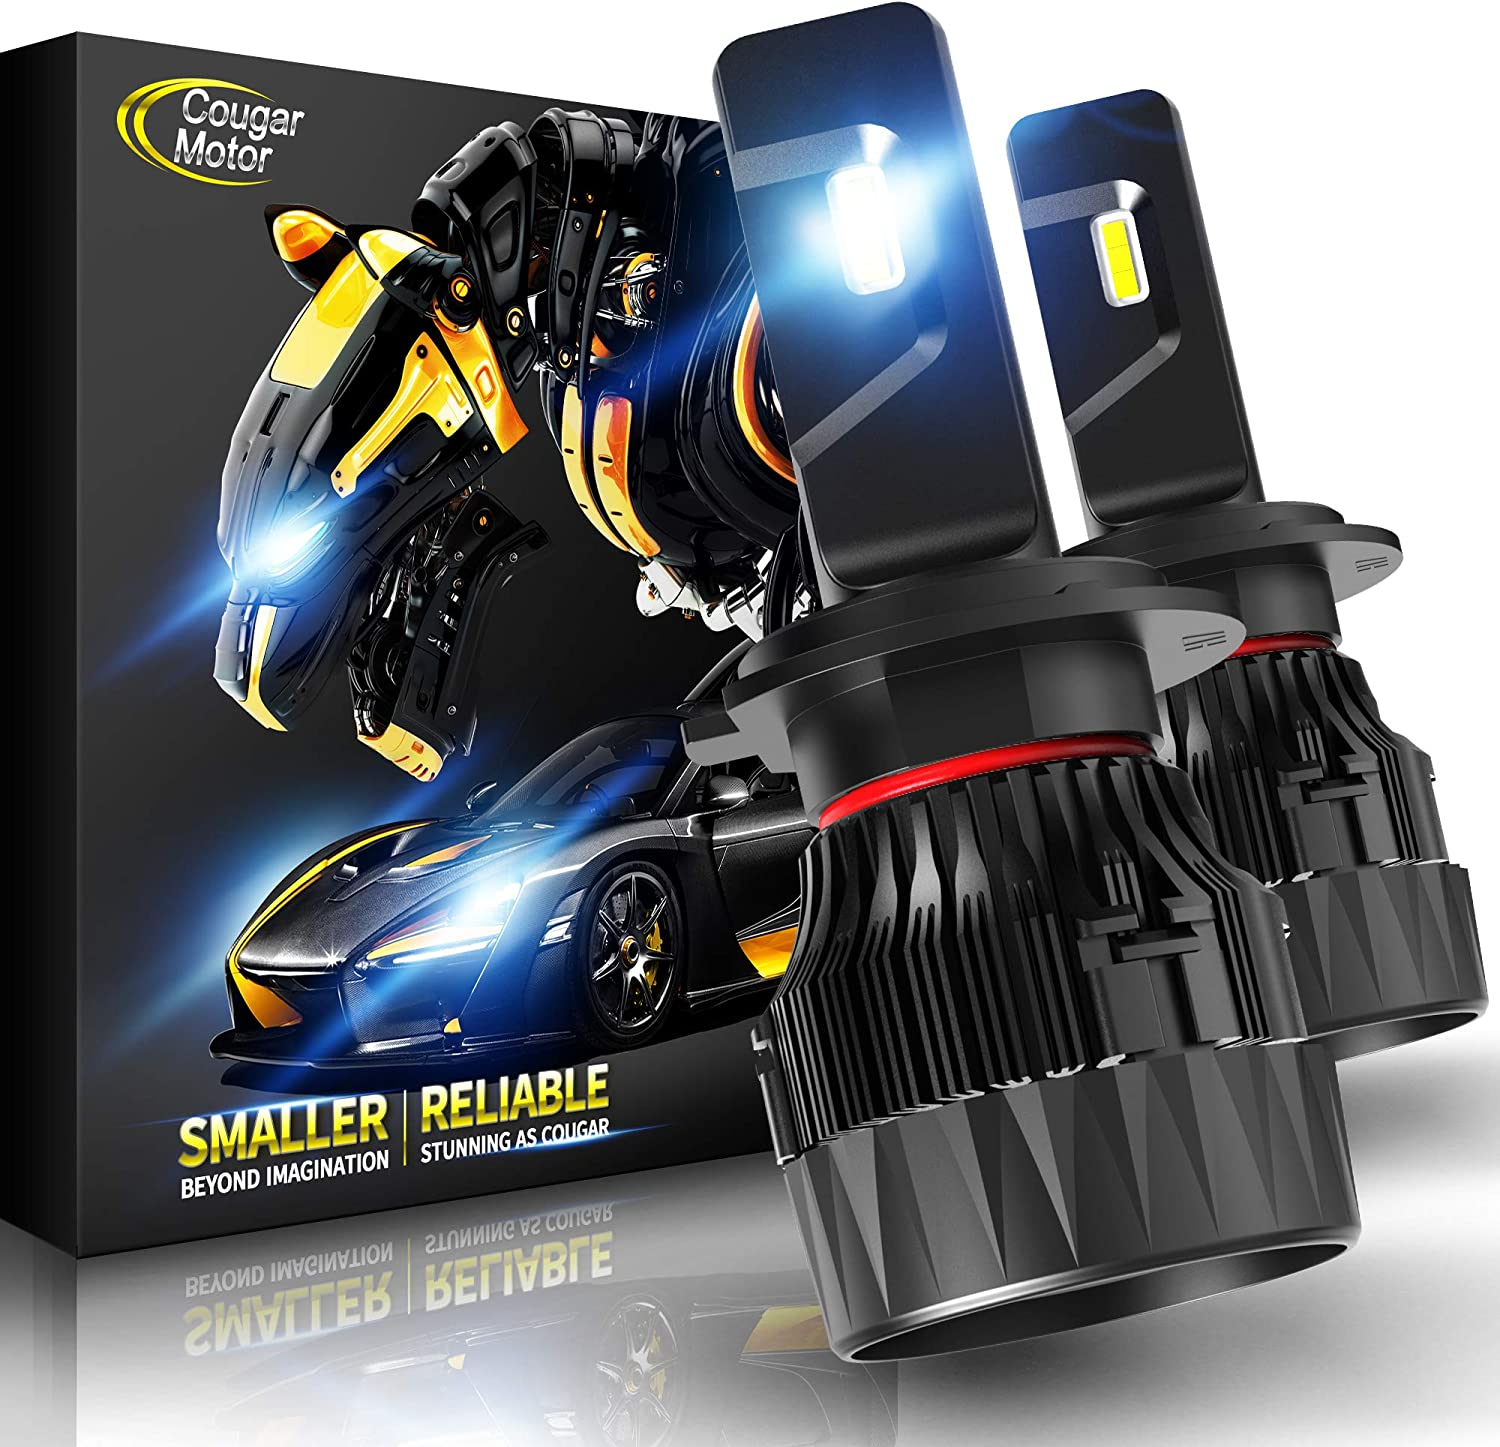 Cougar Motor X-Small H7 LED Headlight Bulb, 10000Lm 6500K All-in-One Conversion Kit - Cool White CREE